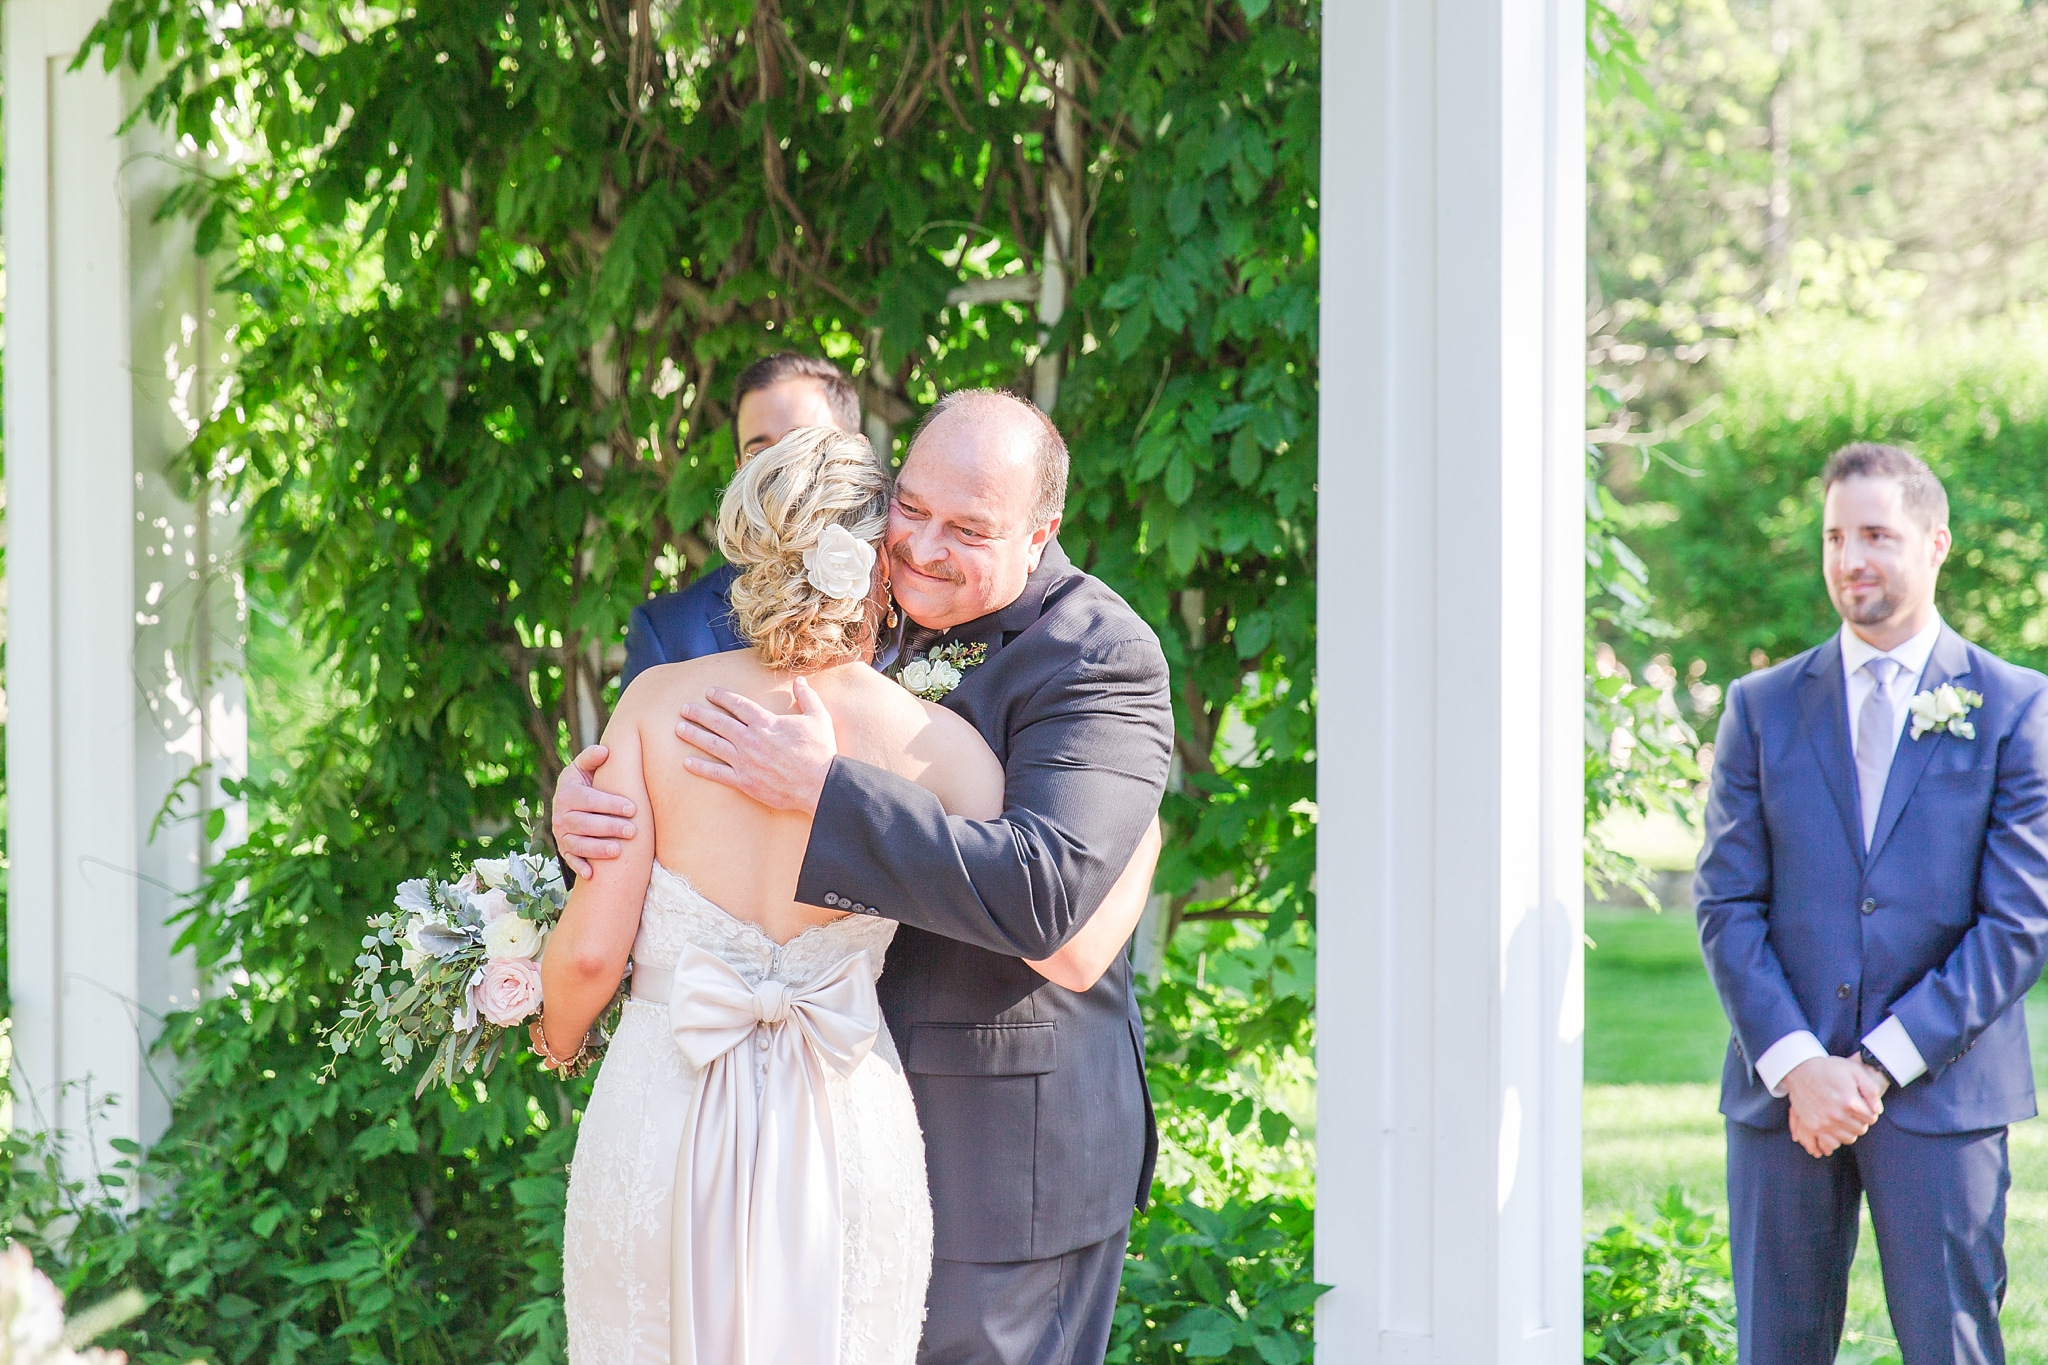 fun-candid-laid-back-wedding-photos-at-wellers-carriage-house-in-saline-michigan-and-at-the-eagle-crest-golf-resort-by-courtney-carolyn-photography_0065.jpg